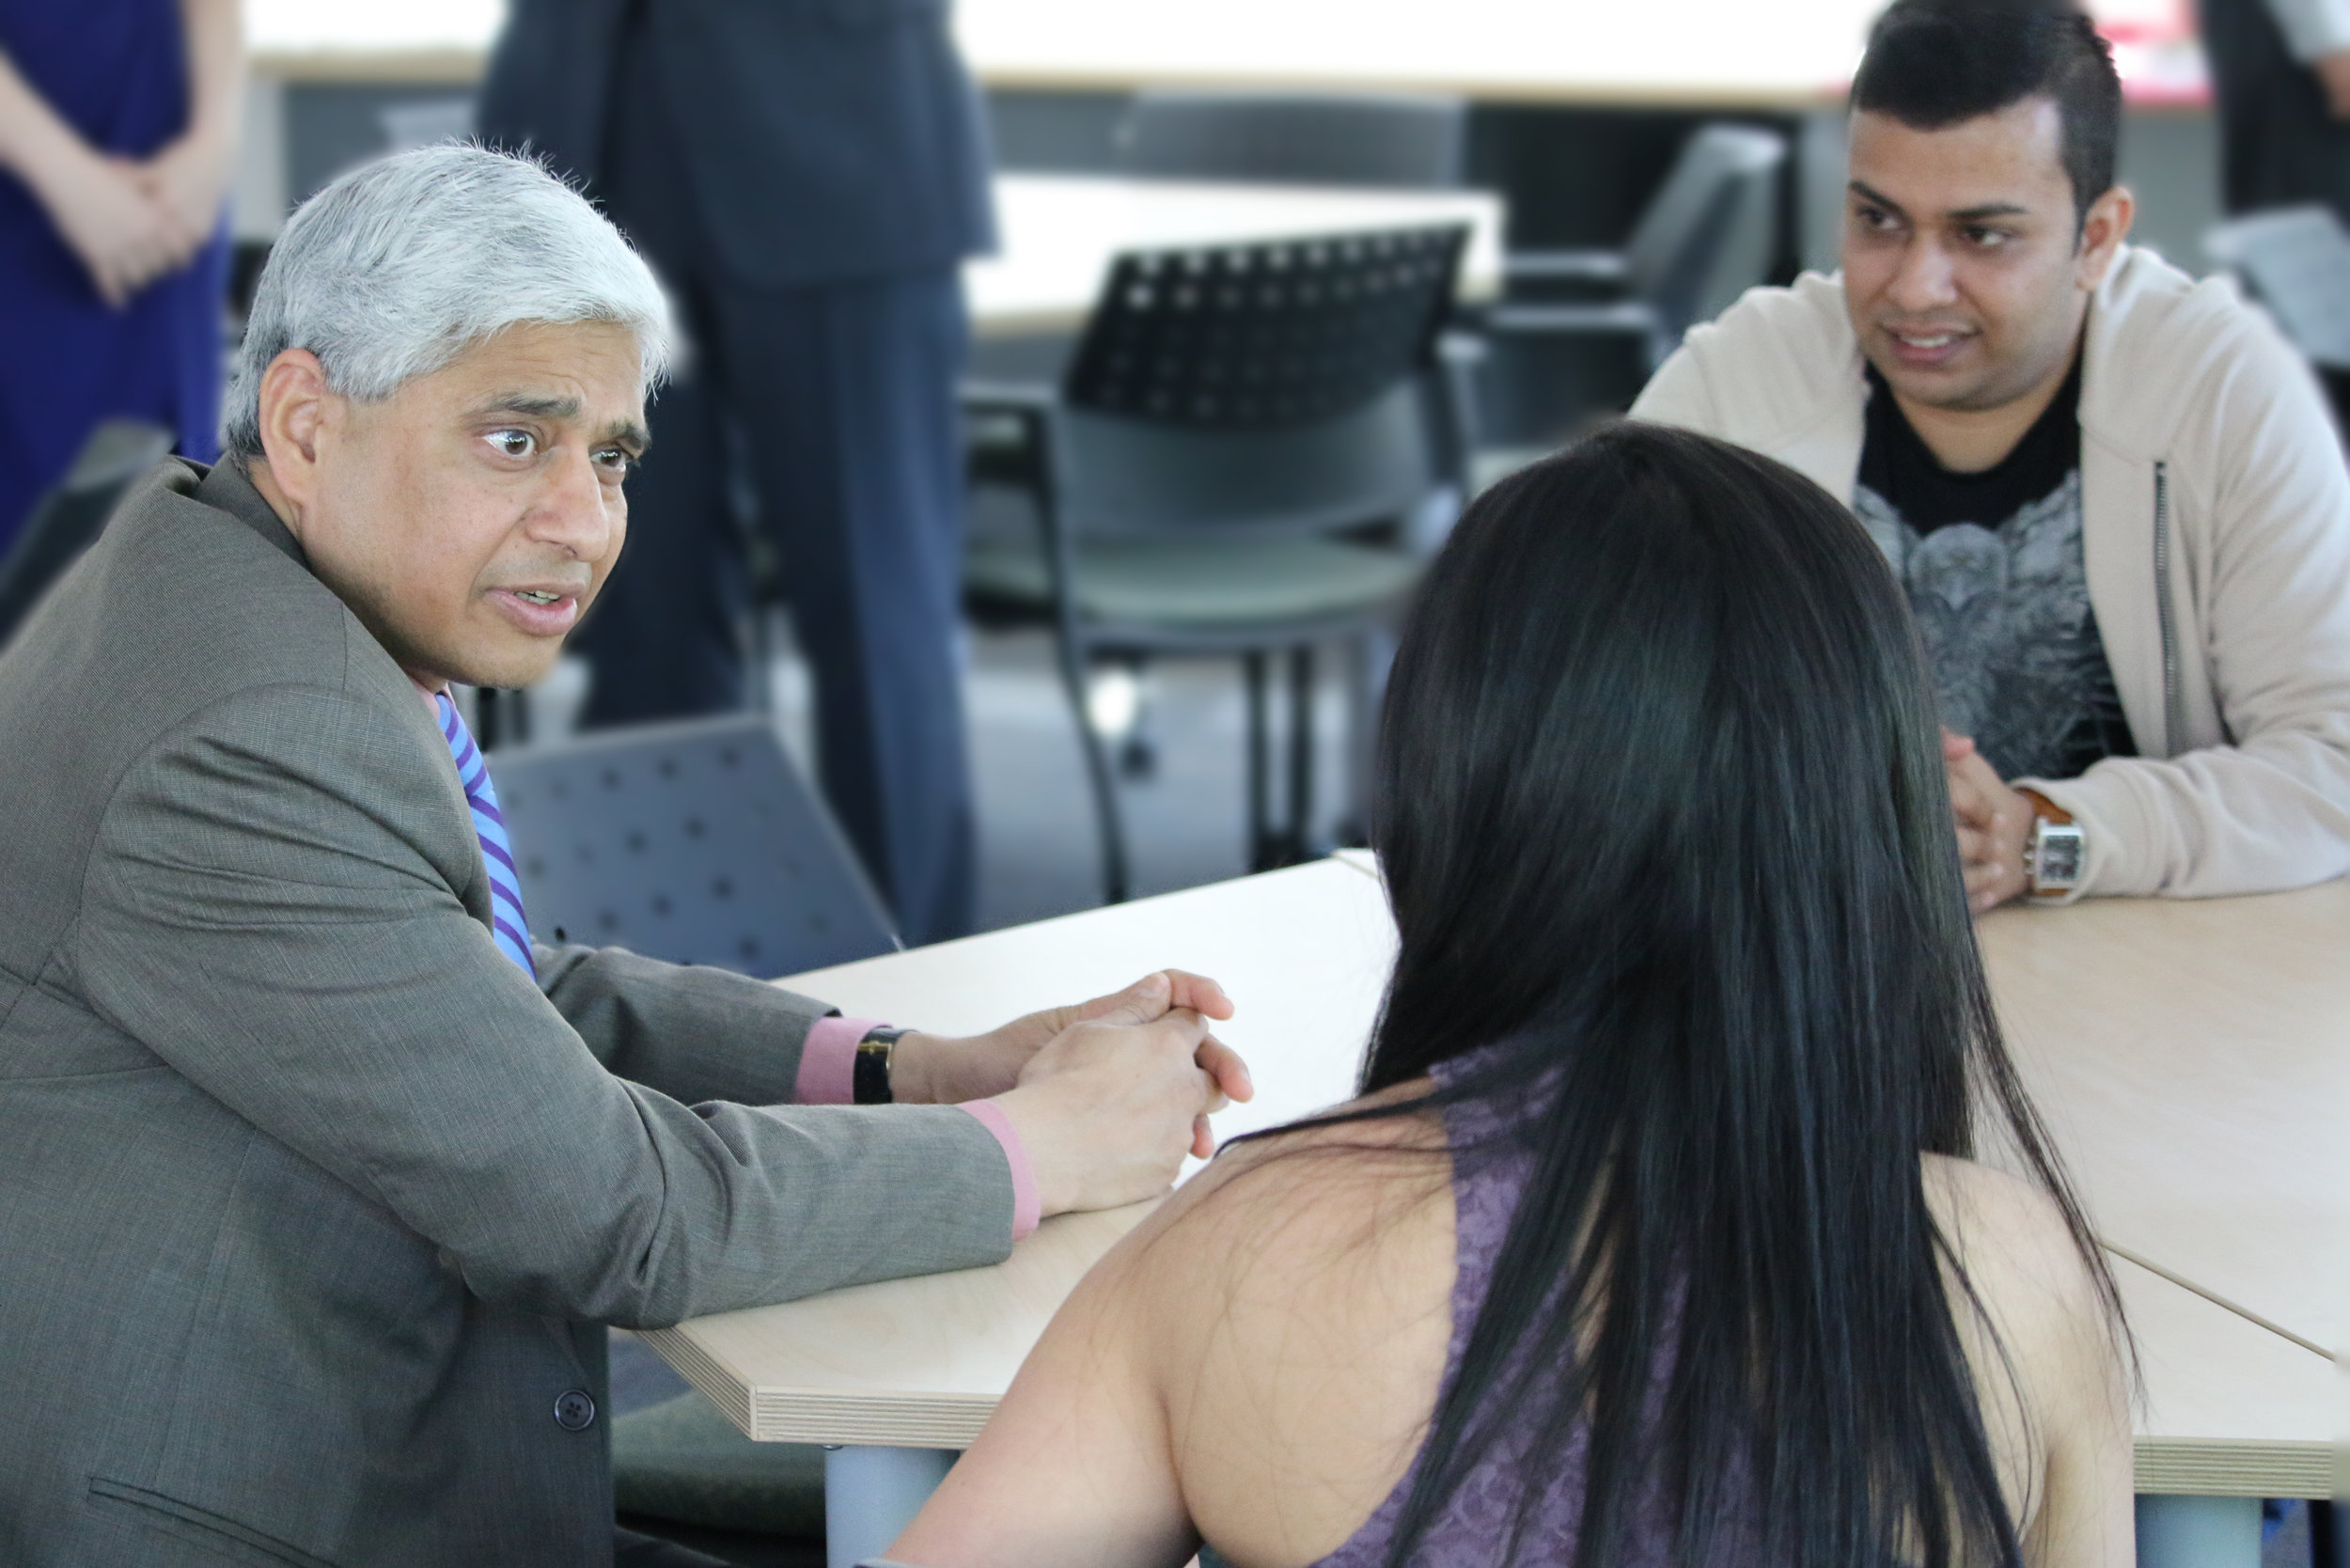 His Excellency Vikas Swarup and Saint Mary's student Mandar Lad